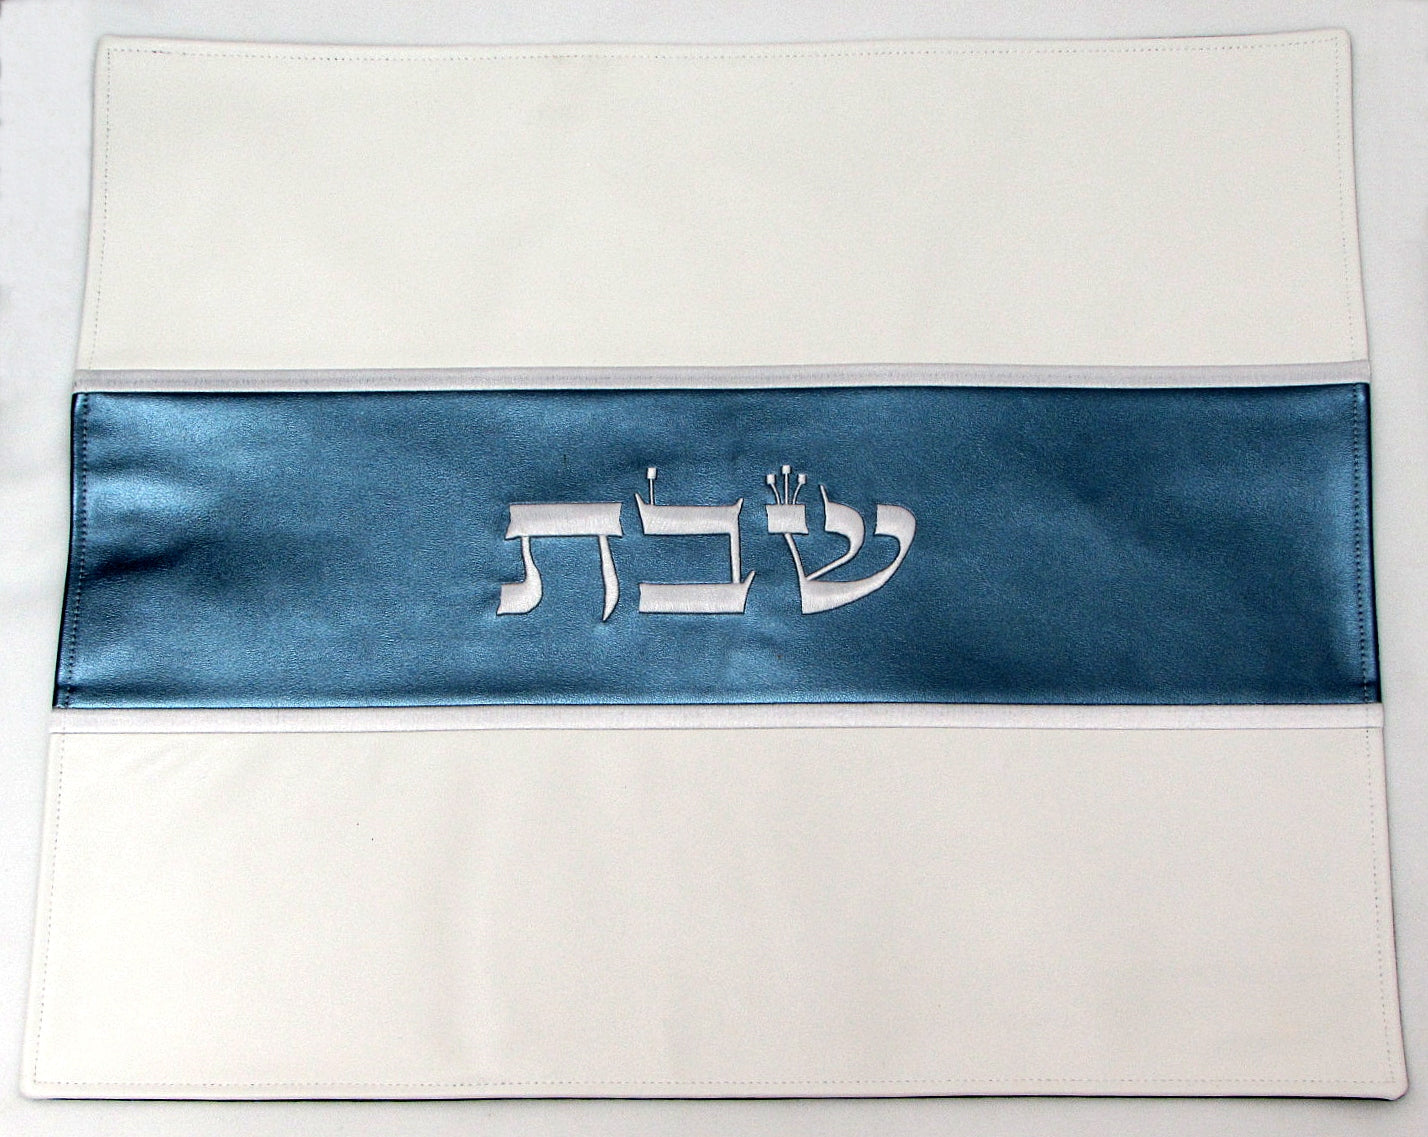 Faux leather challah cover in morning blue and off-white